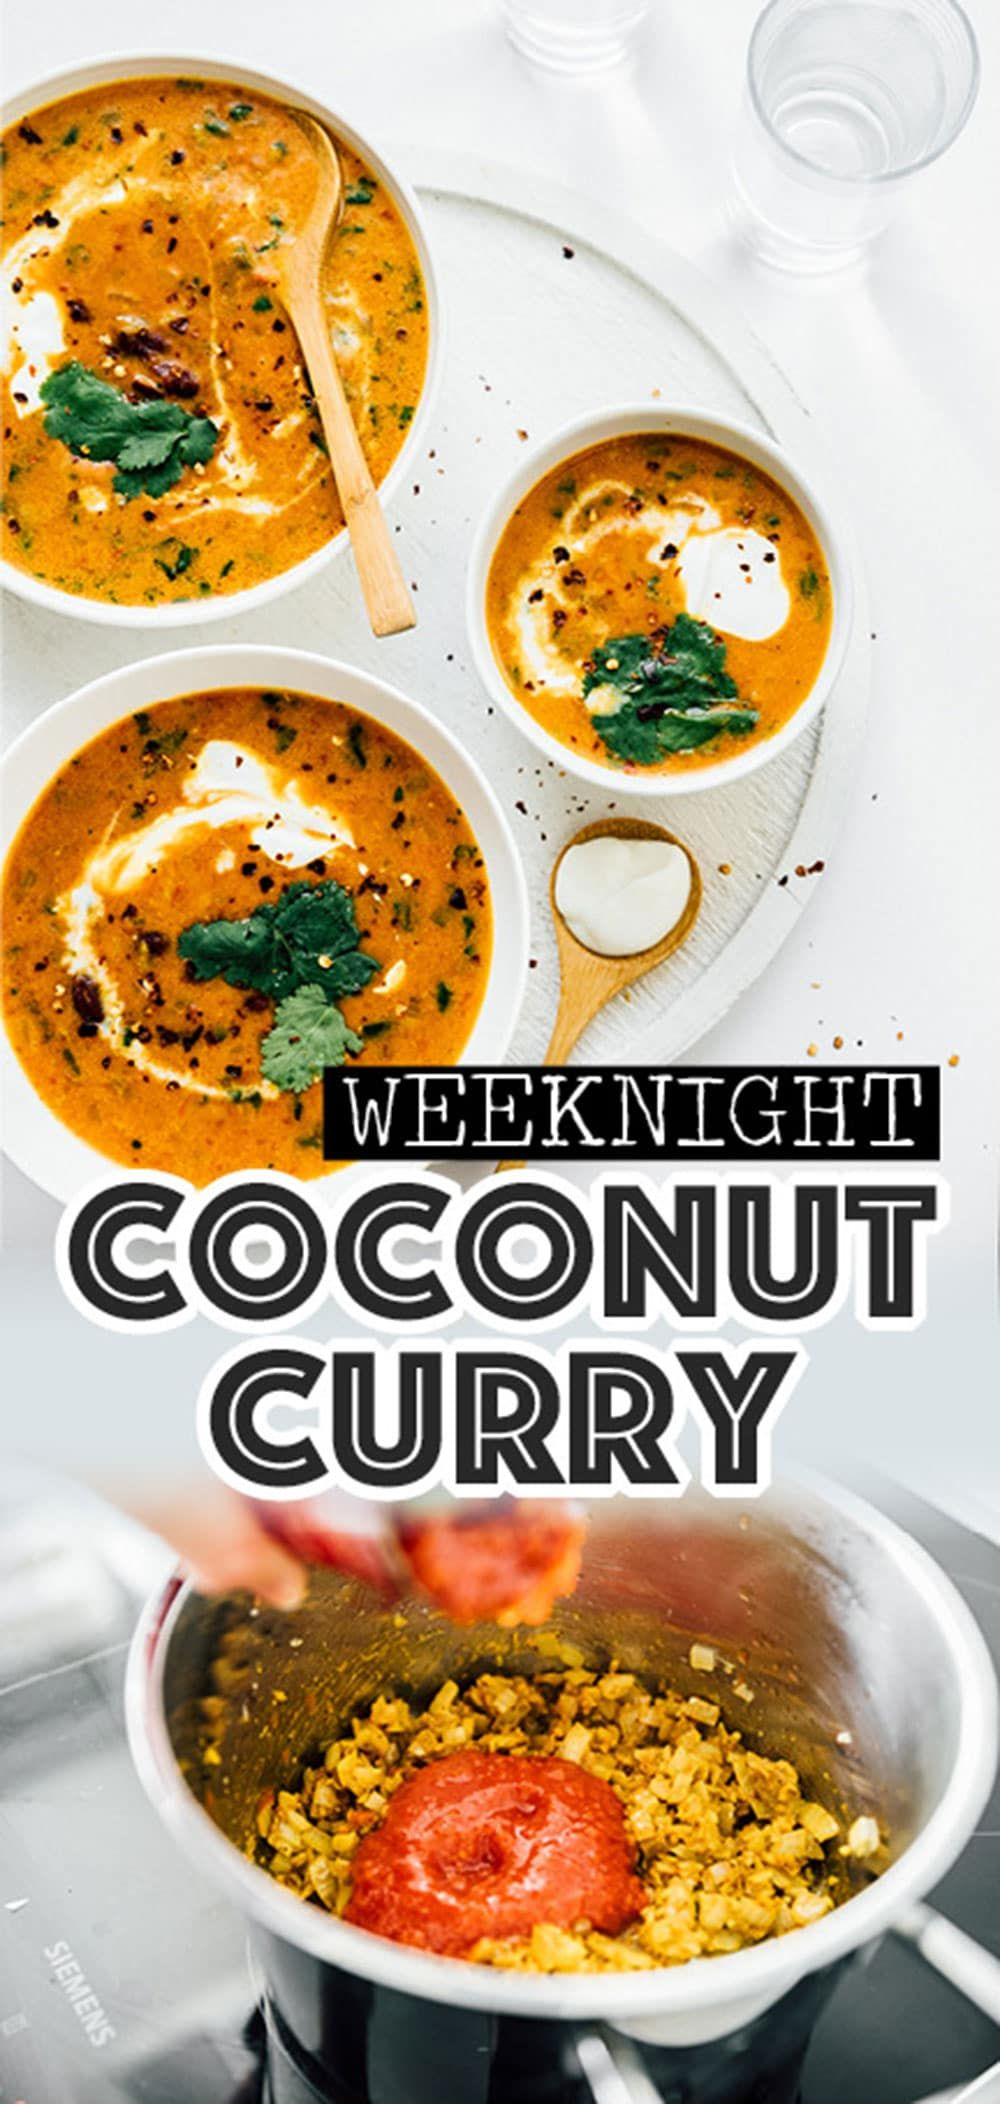 This Coconut Kidney Bean Curry recipe is an easy, flavor packed vegan dinner to whip up on busy weeknights! A healthy dinner idea that the whole family is going to love. #veganrecipes #vegetarianrecipes #dinner #healthyrecipes #curry #asianfood #indianfood #coconutrecipes